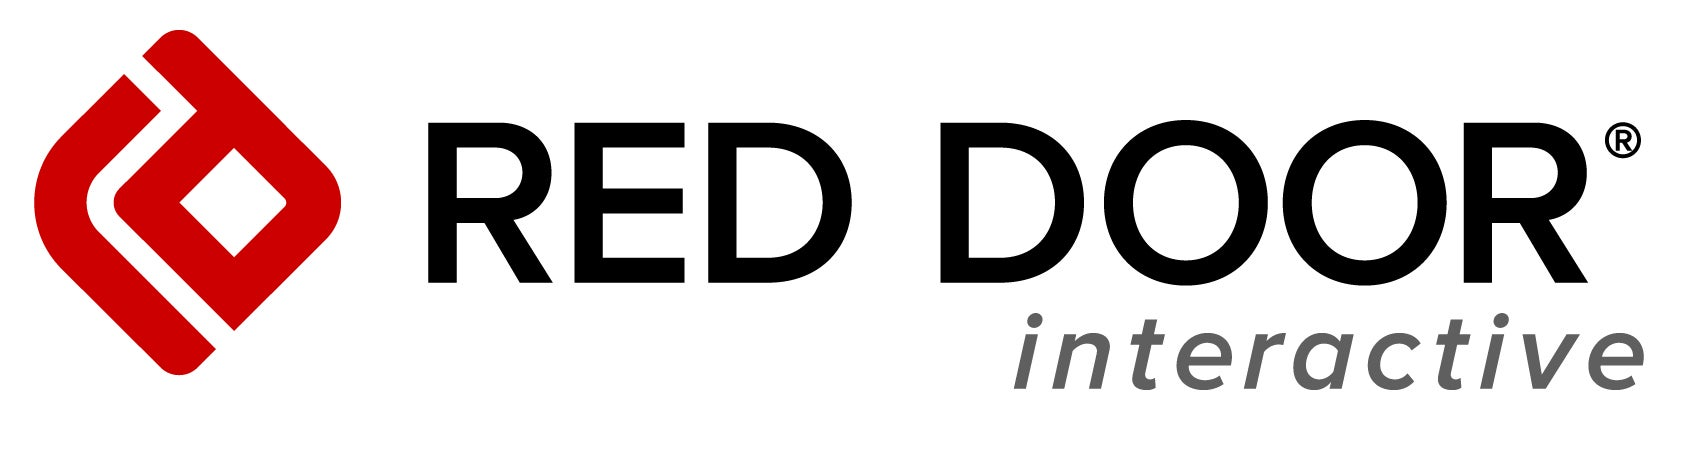 Red door interactive logo